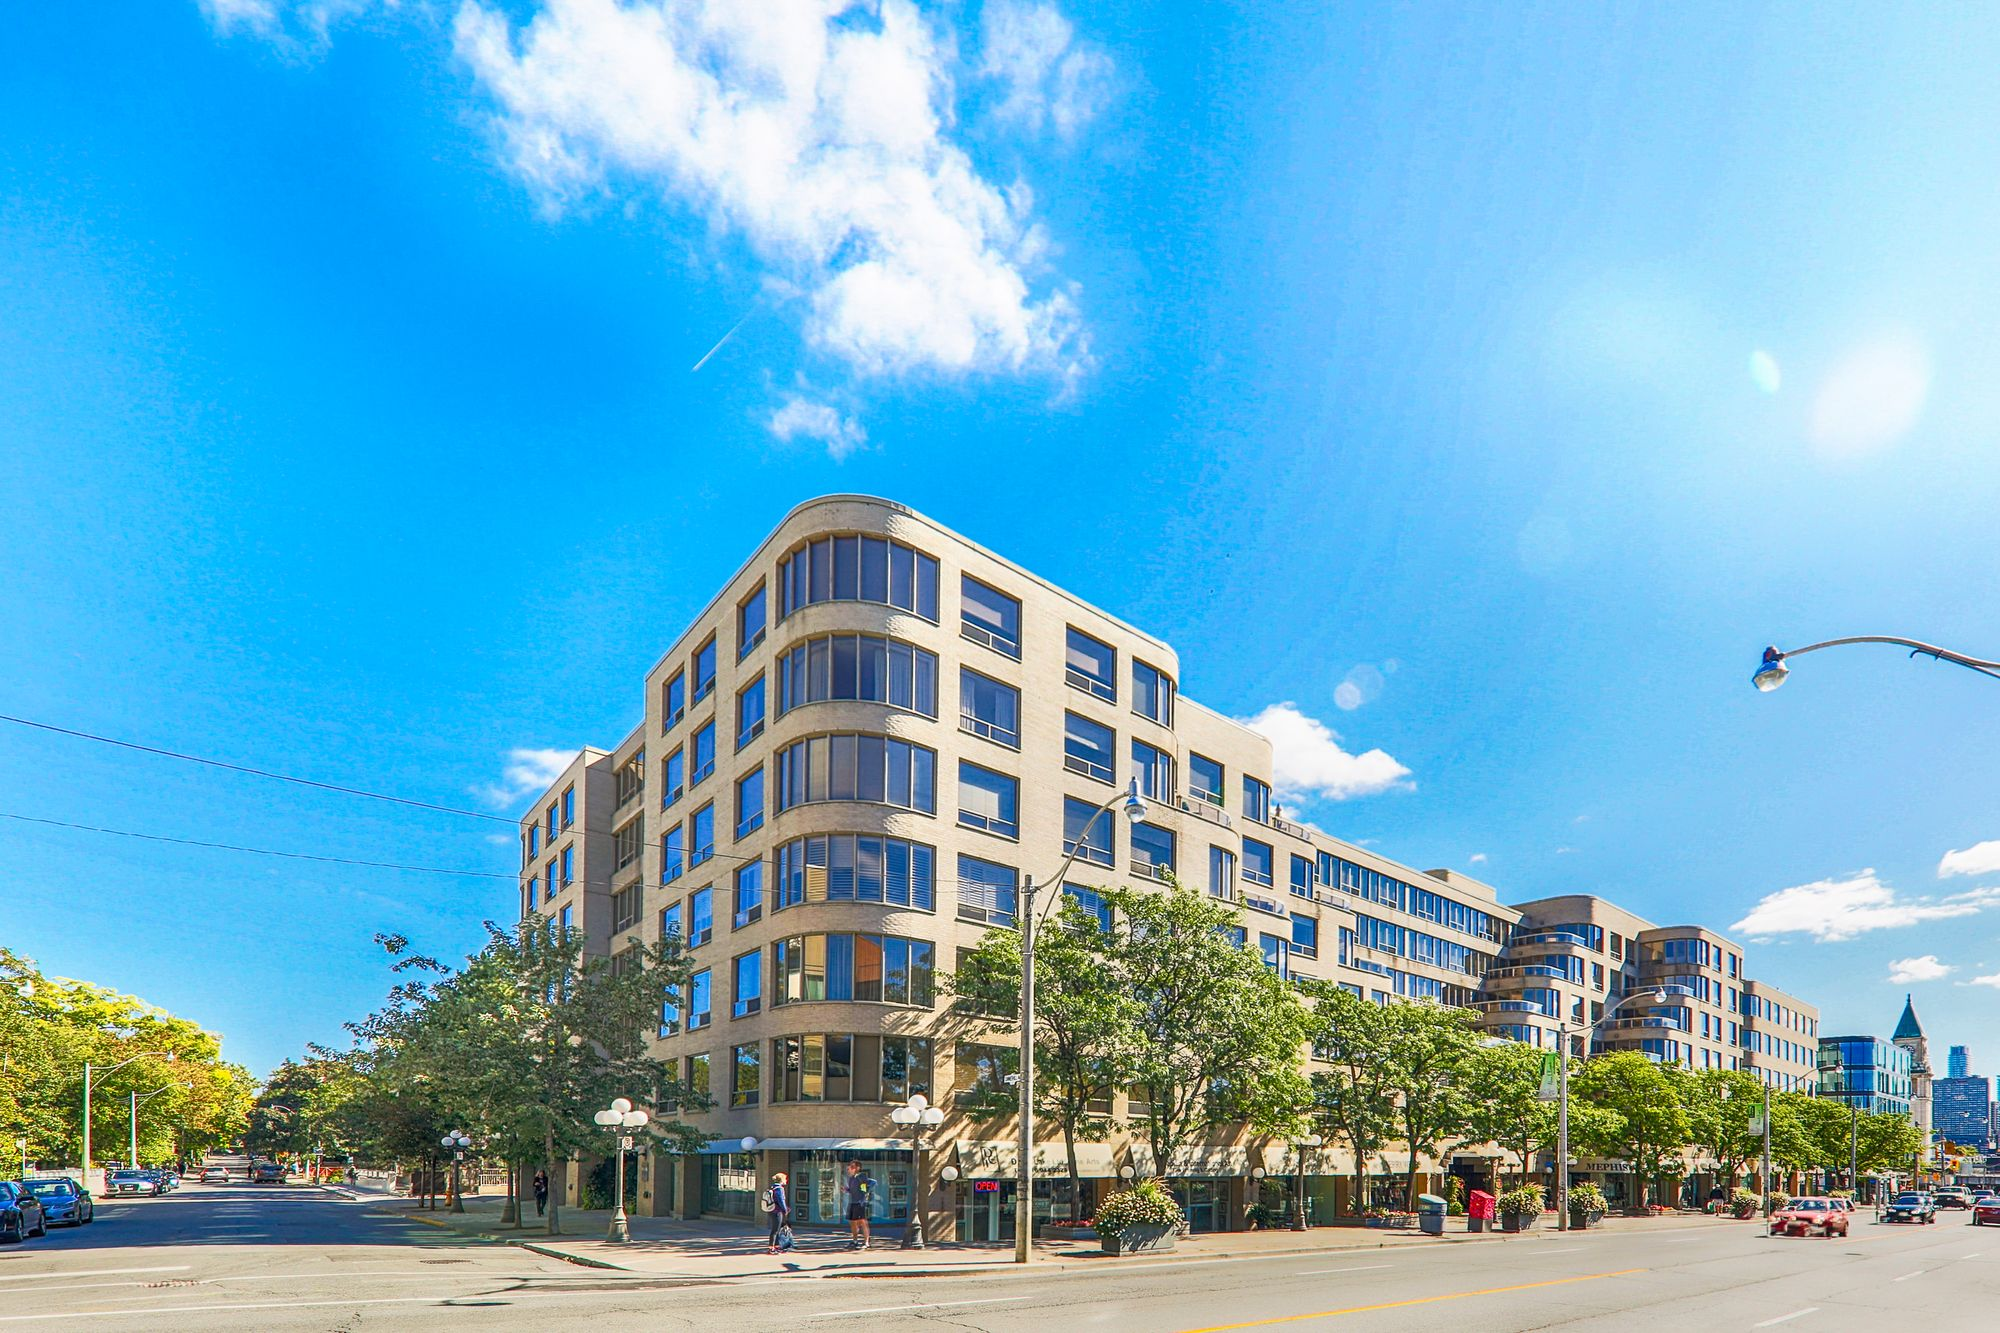 The Ports at 1177 Yonge St. This condo is located in  Midtown, Toronto - image #1 of 4 by Strata.ca